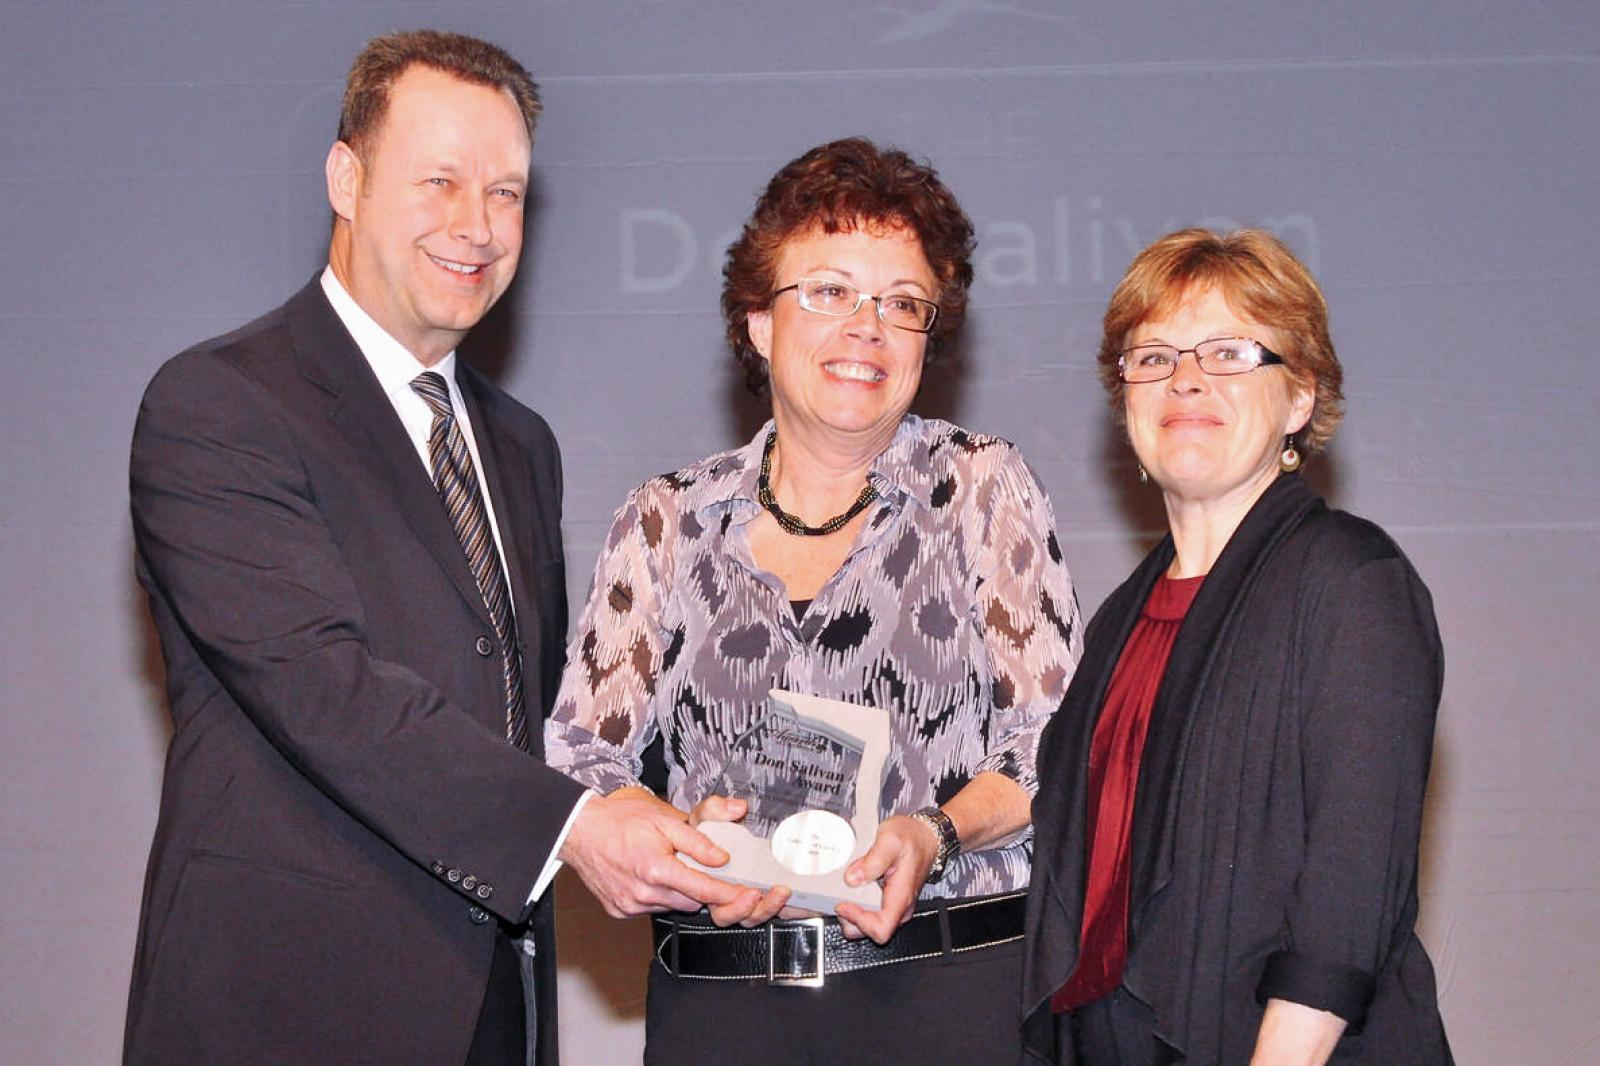 Barbara Rosensweig (centre) and Barb Welburn of The Cultivated Garden of Toronto received the inaugural Don Salivan Award for Grounds Management, presented by Gregg Salivan in memory of his father.